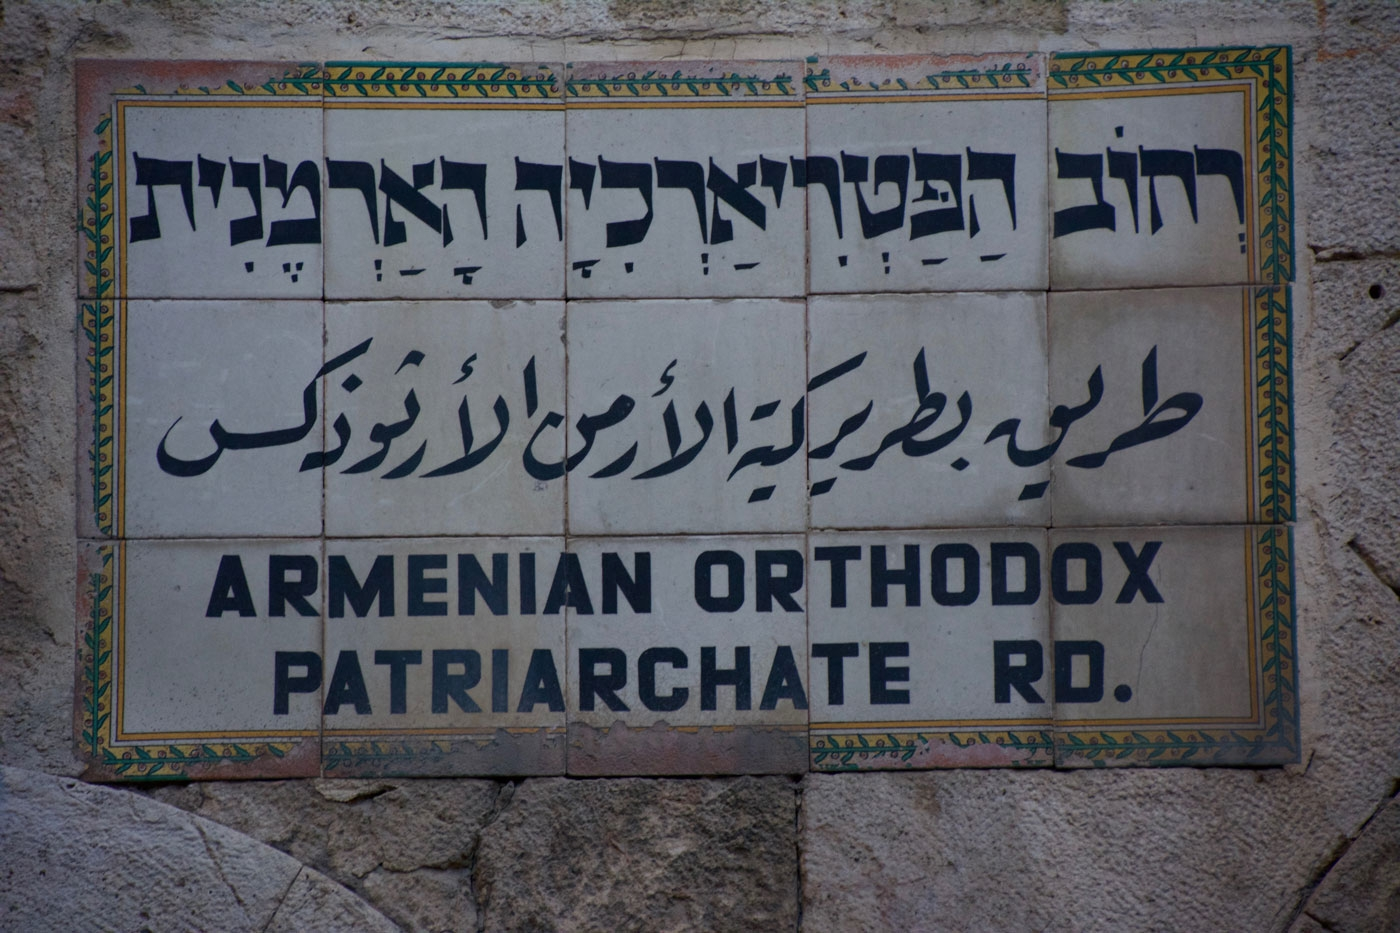 Road signs in Jerusalem's Old City written in Hebrew, Arabic, & English